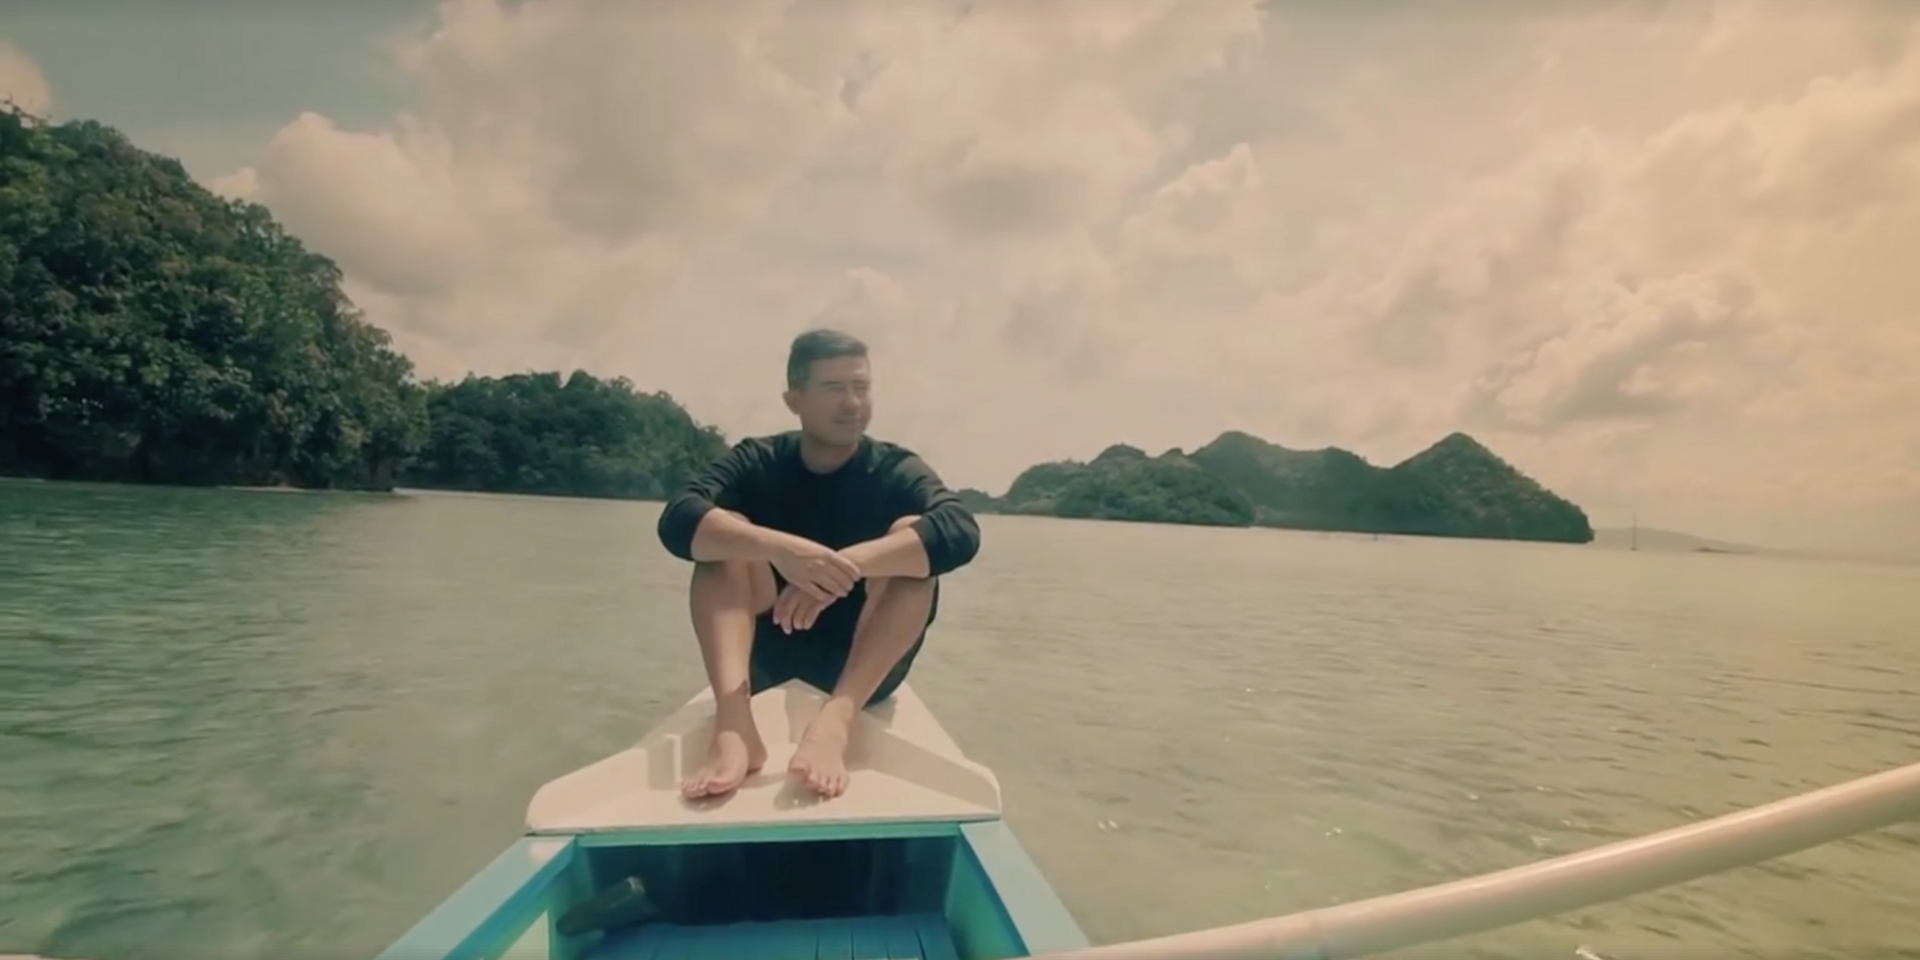 Hale releases new music video 'Alon' for Siargao soundtrack